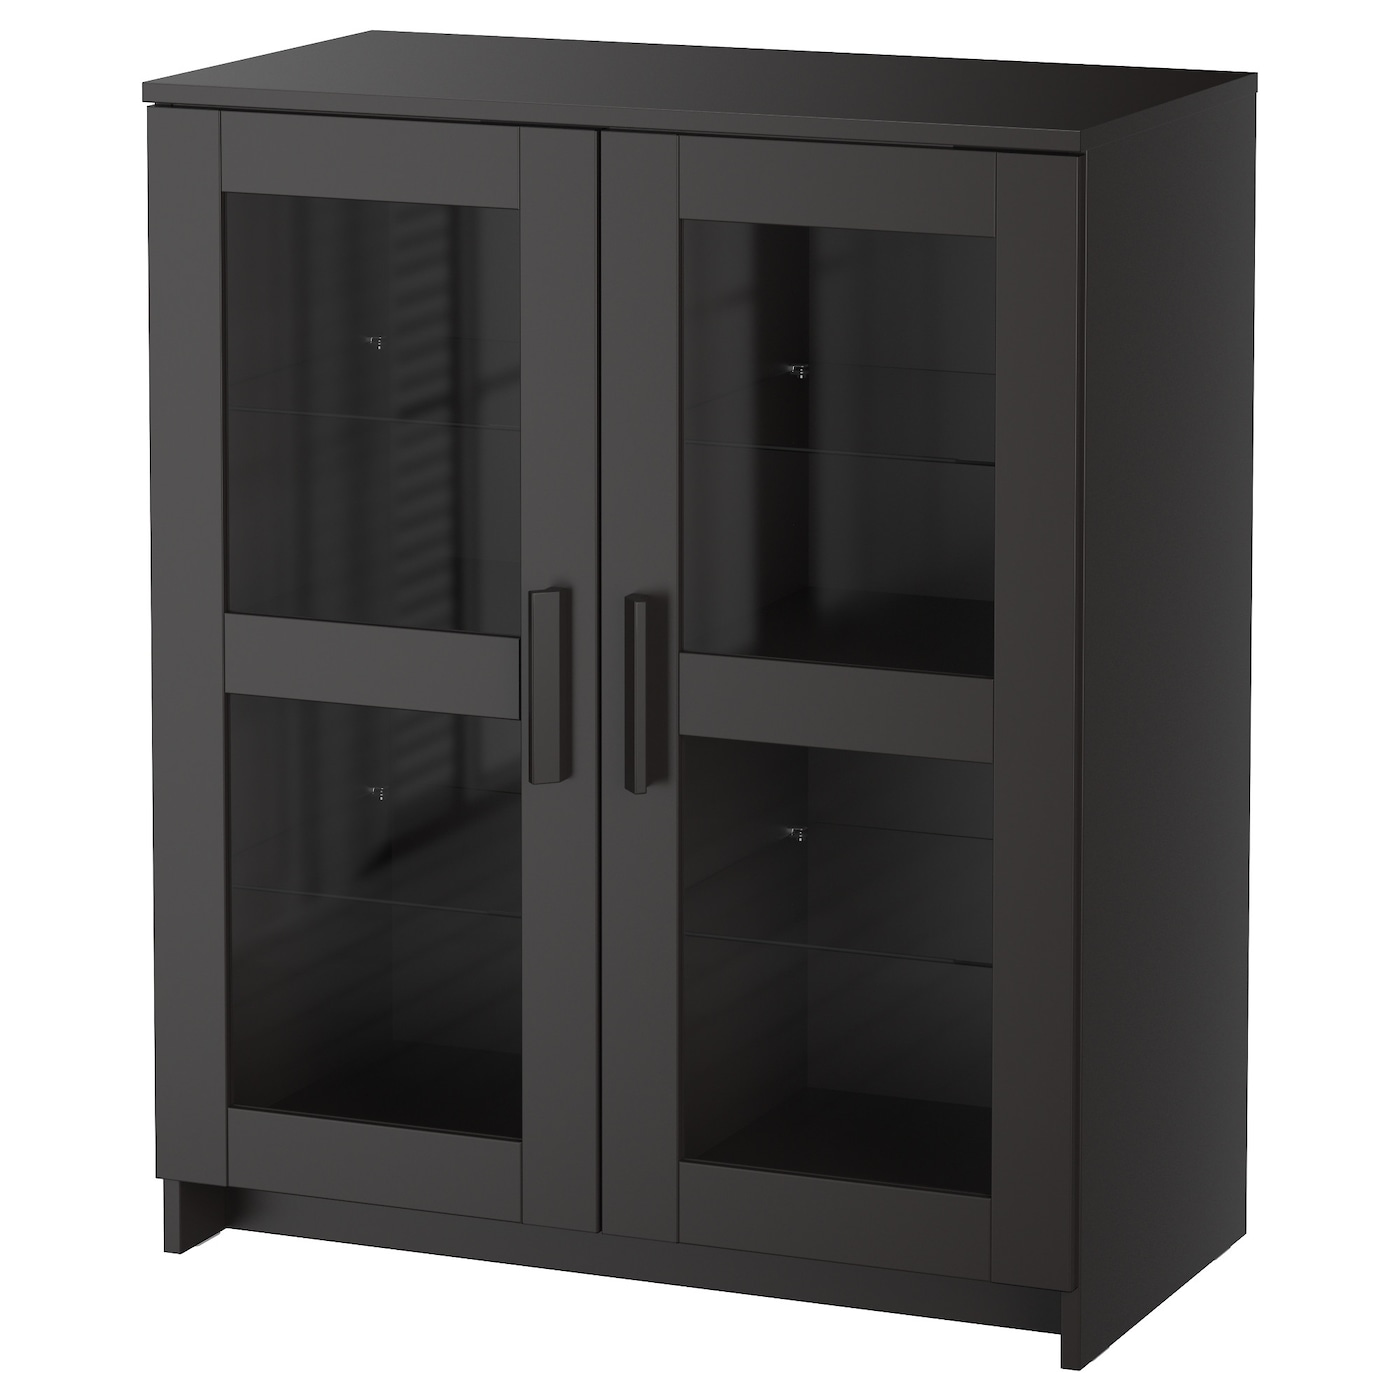 IKEA BRIMNES Cabinet With Doors Adjustable Shelves, So You Can Customise  Your Storage As Needed